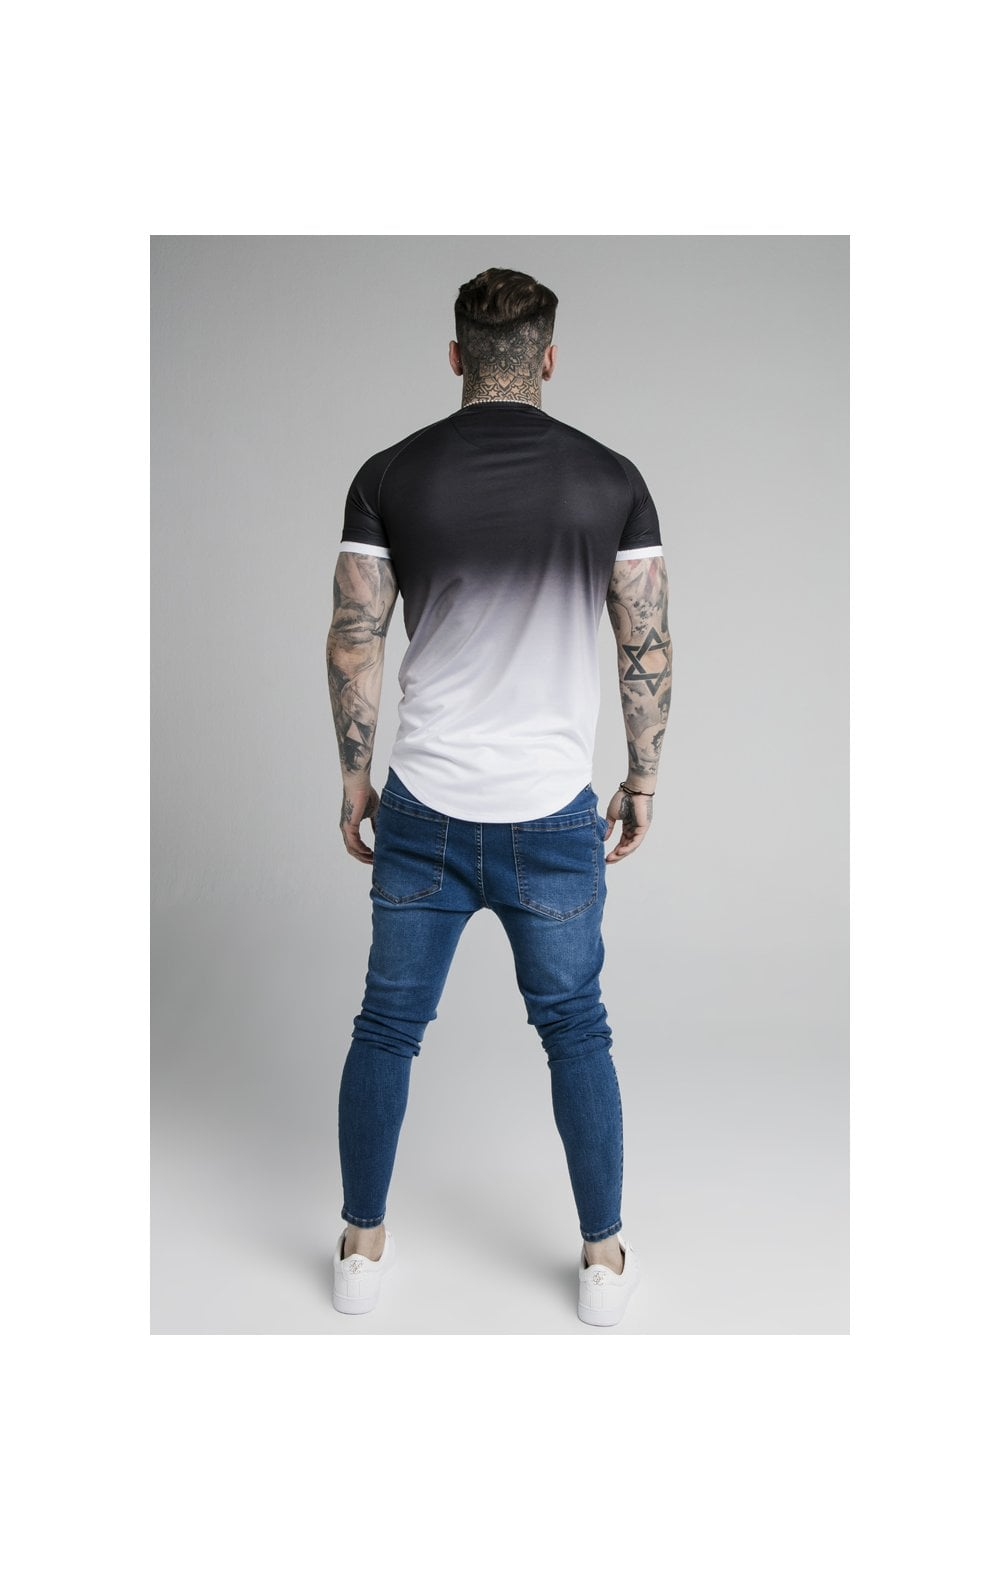 Load image into Gallery viewer, SikSilk S/S Prestige Fade Inset Tech Tee - Black & White (4)